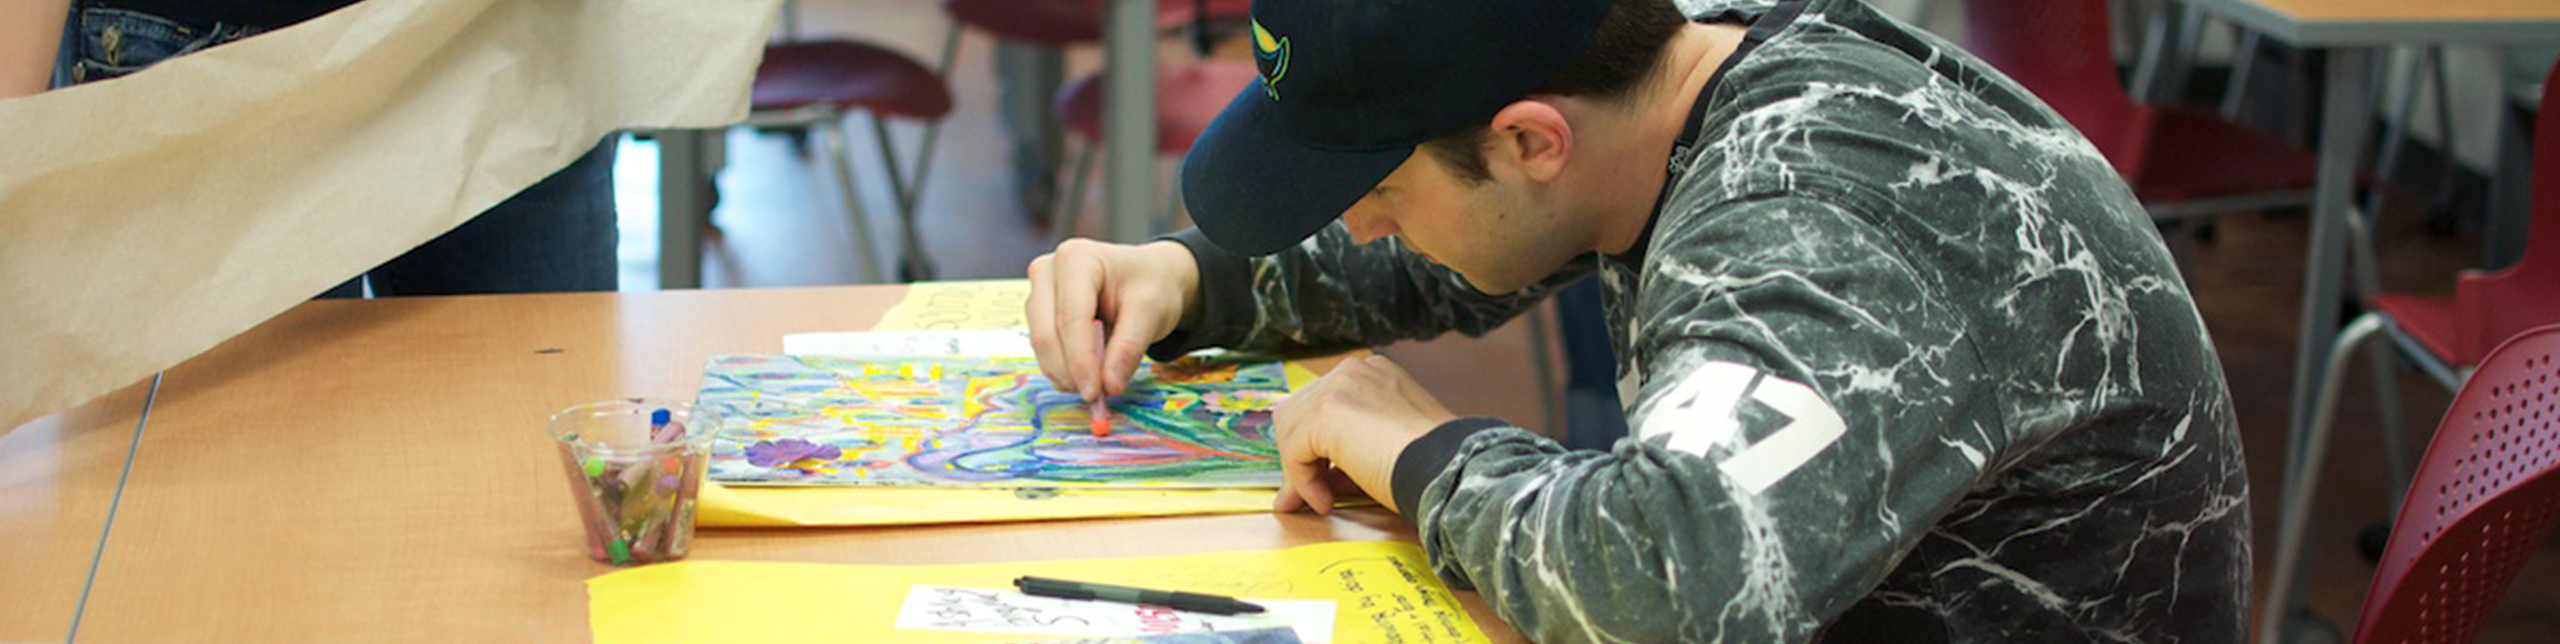 student drawing a picture